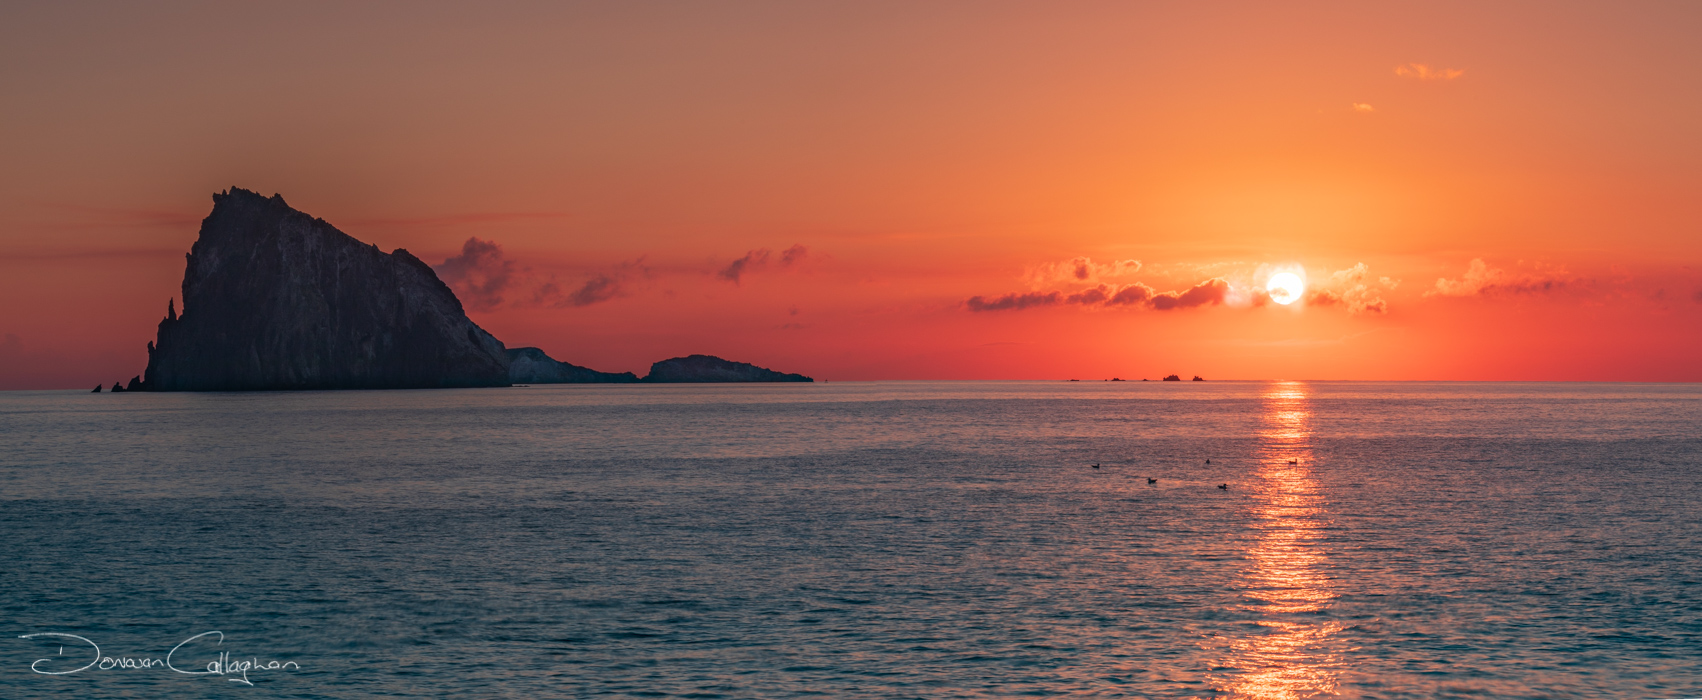 Panarea the sun is rising over the island of Dattilo, Italy